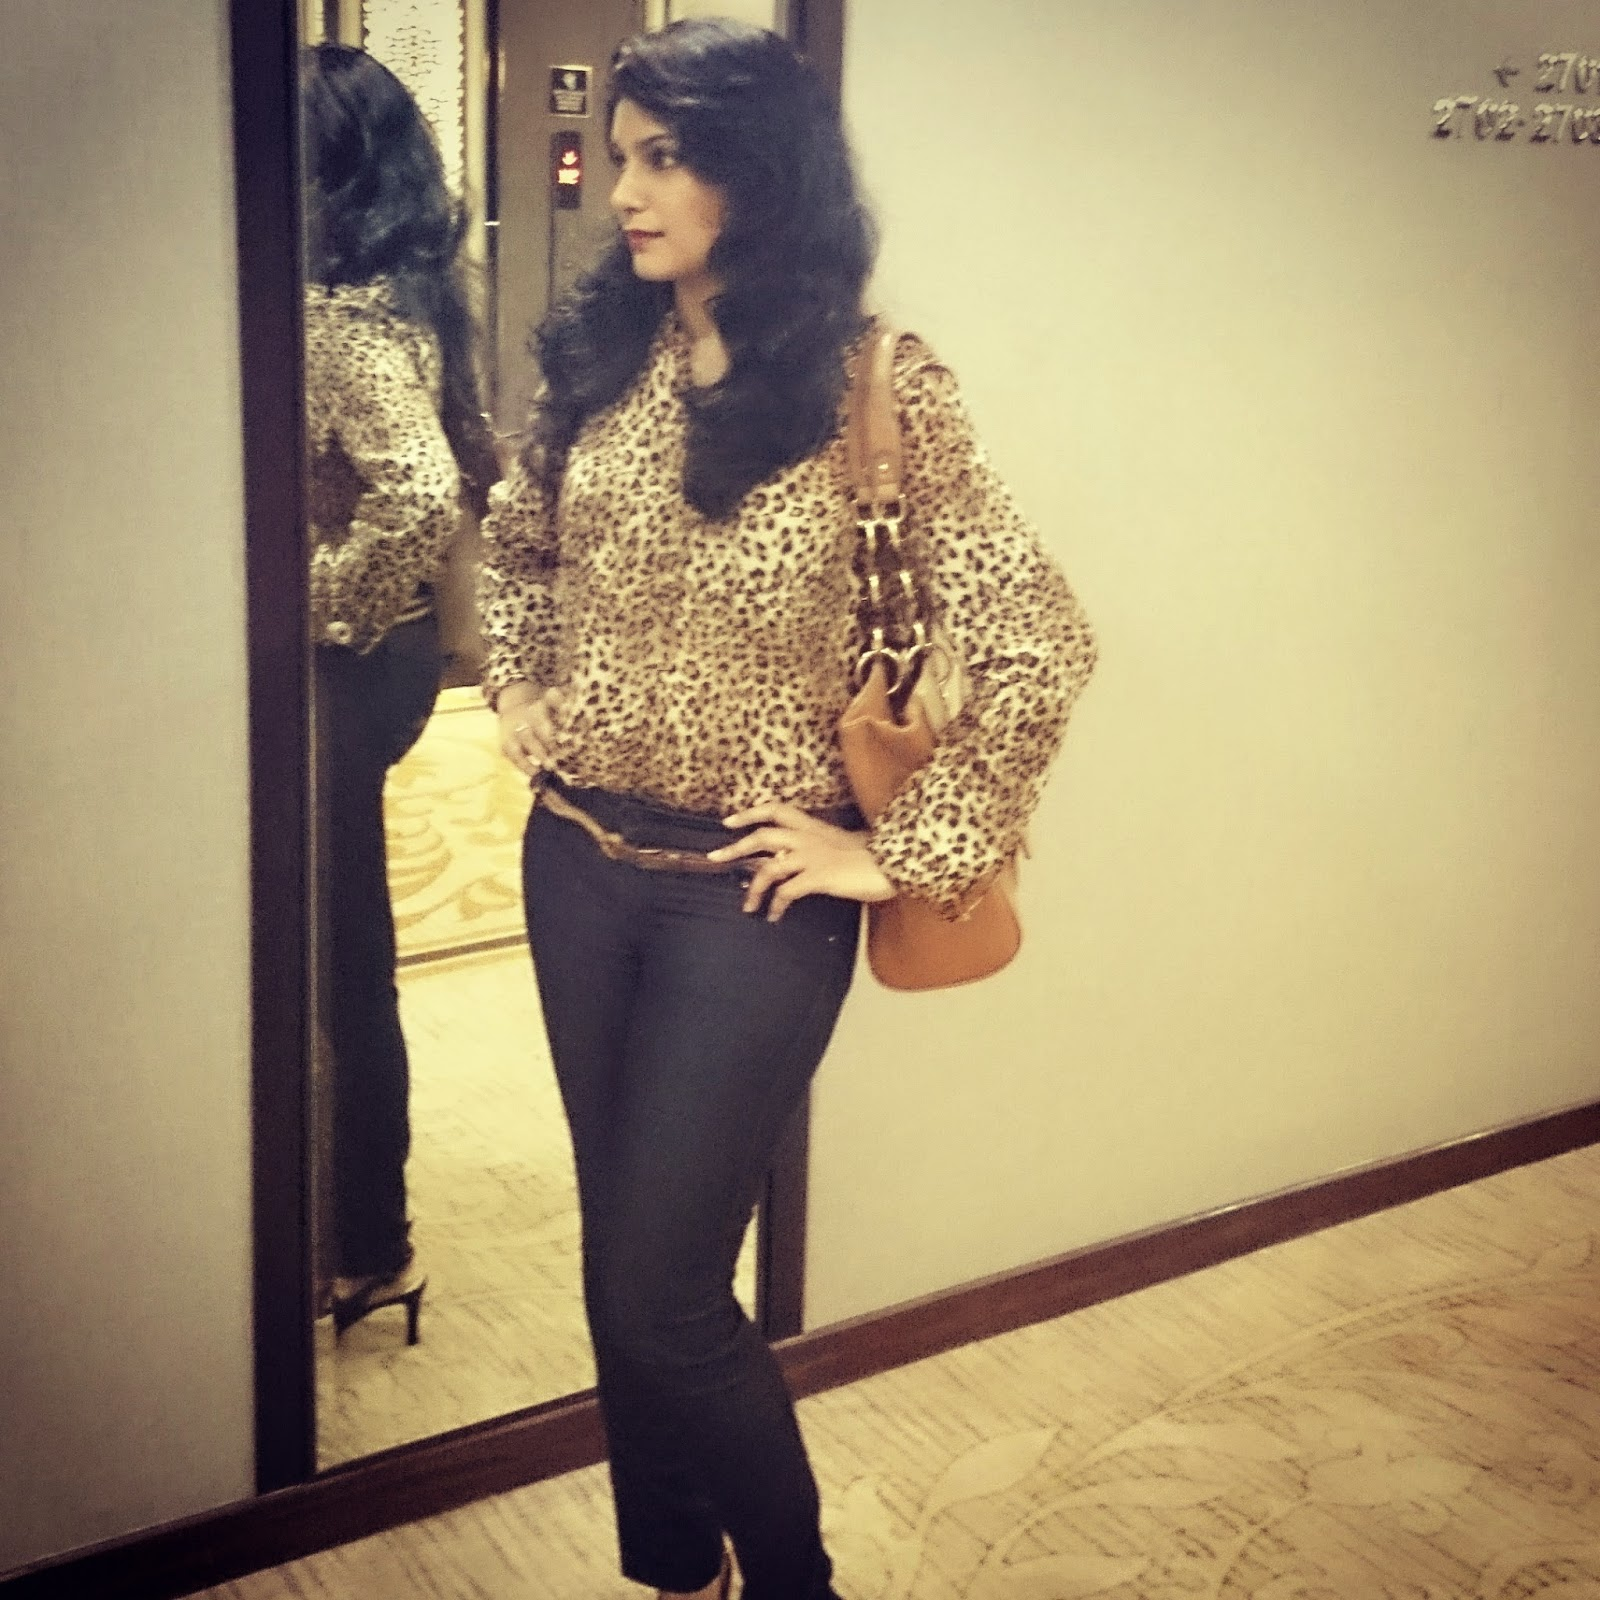 Khoobsurat Moment with leopard print, red lips and wavy hair.